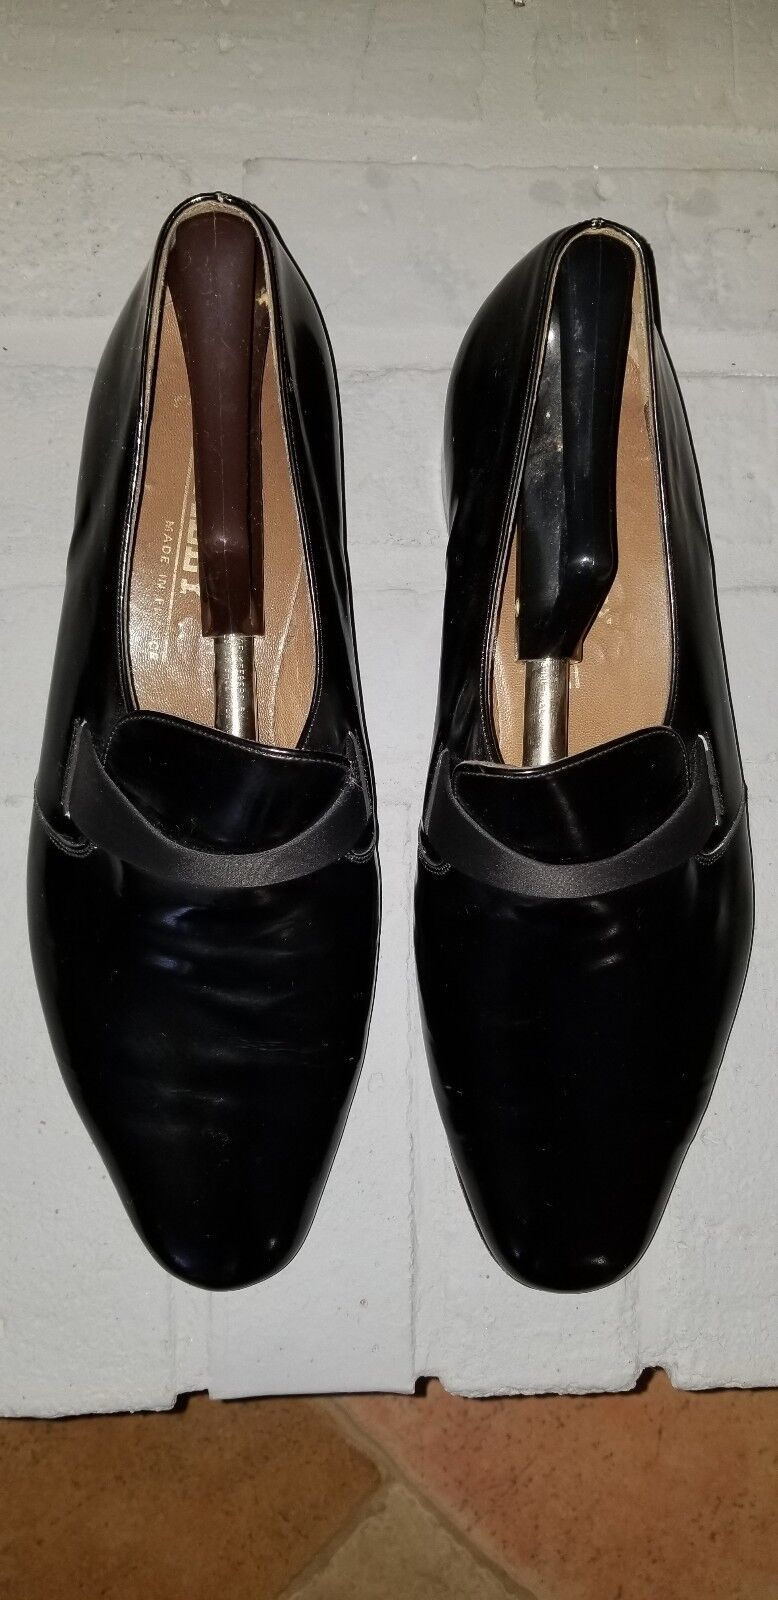 BALLY schwarz PATENT LEATHER LEATHER LEATHER herren schuhe, PUMPS,Größe 10 1 2 M, MADE IN FRANCE ae29e3